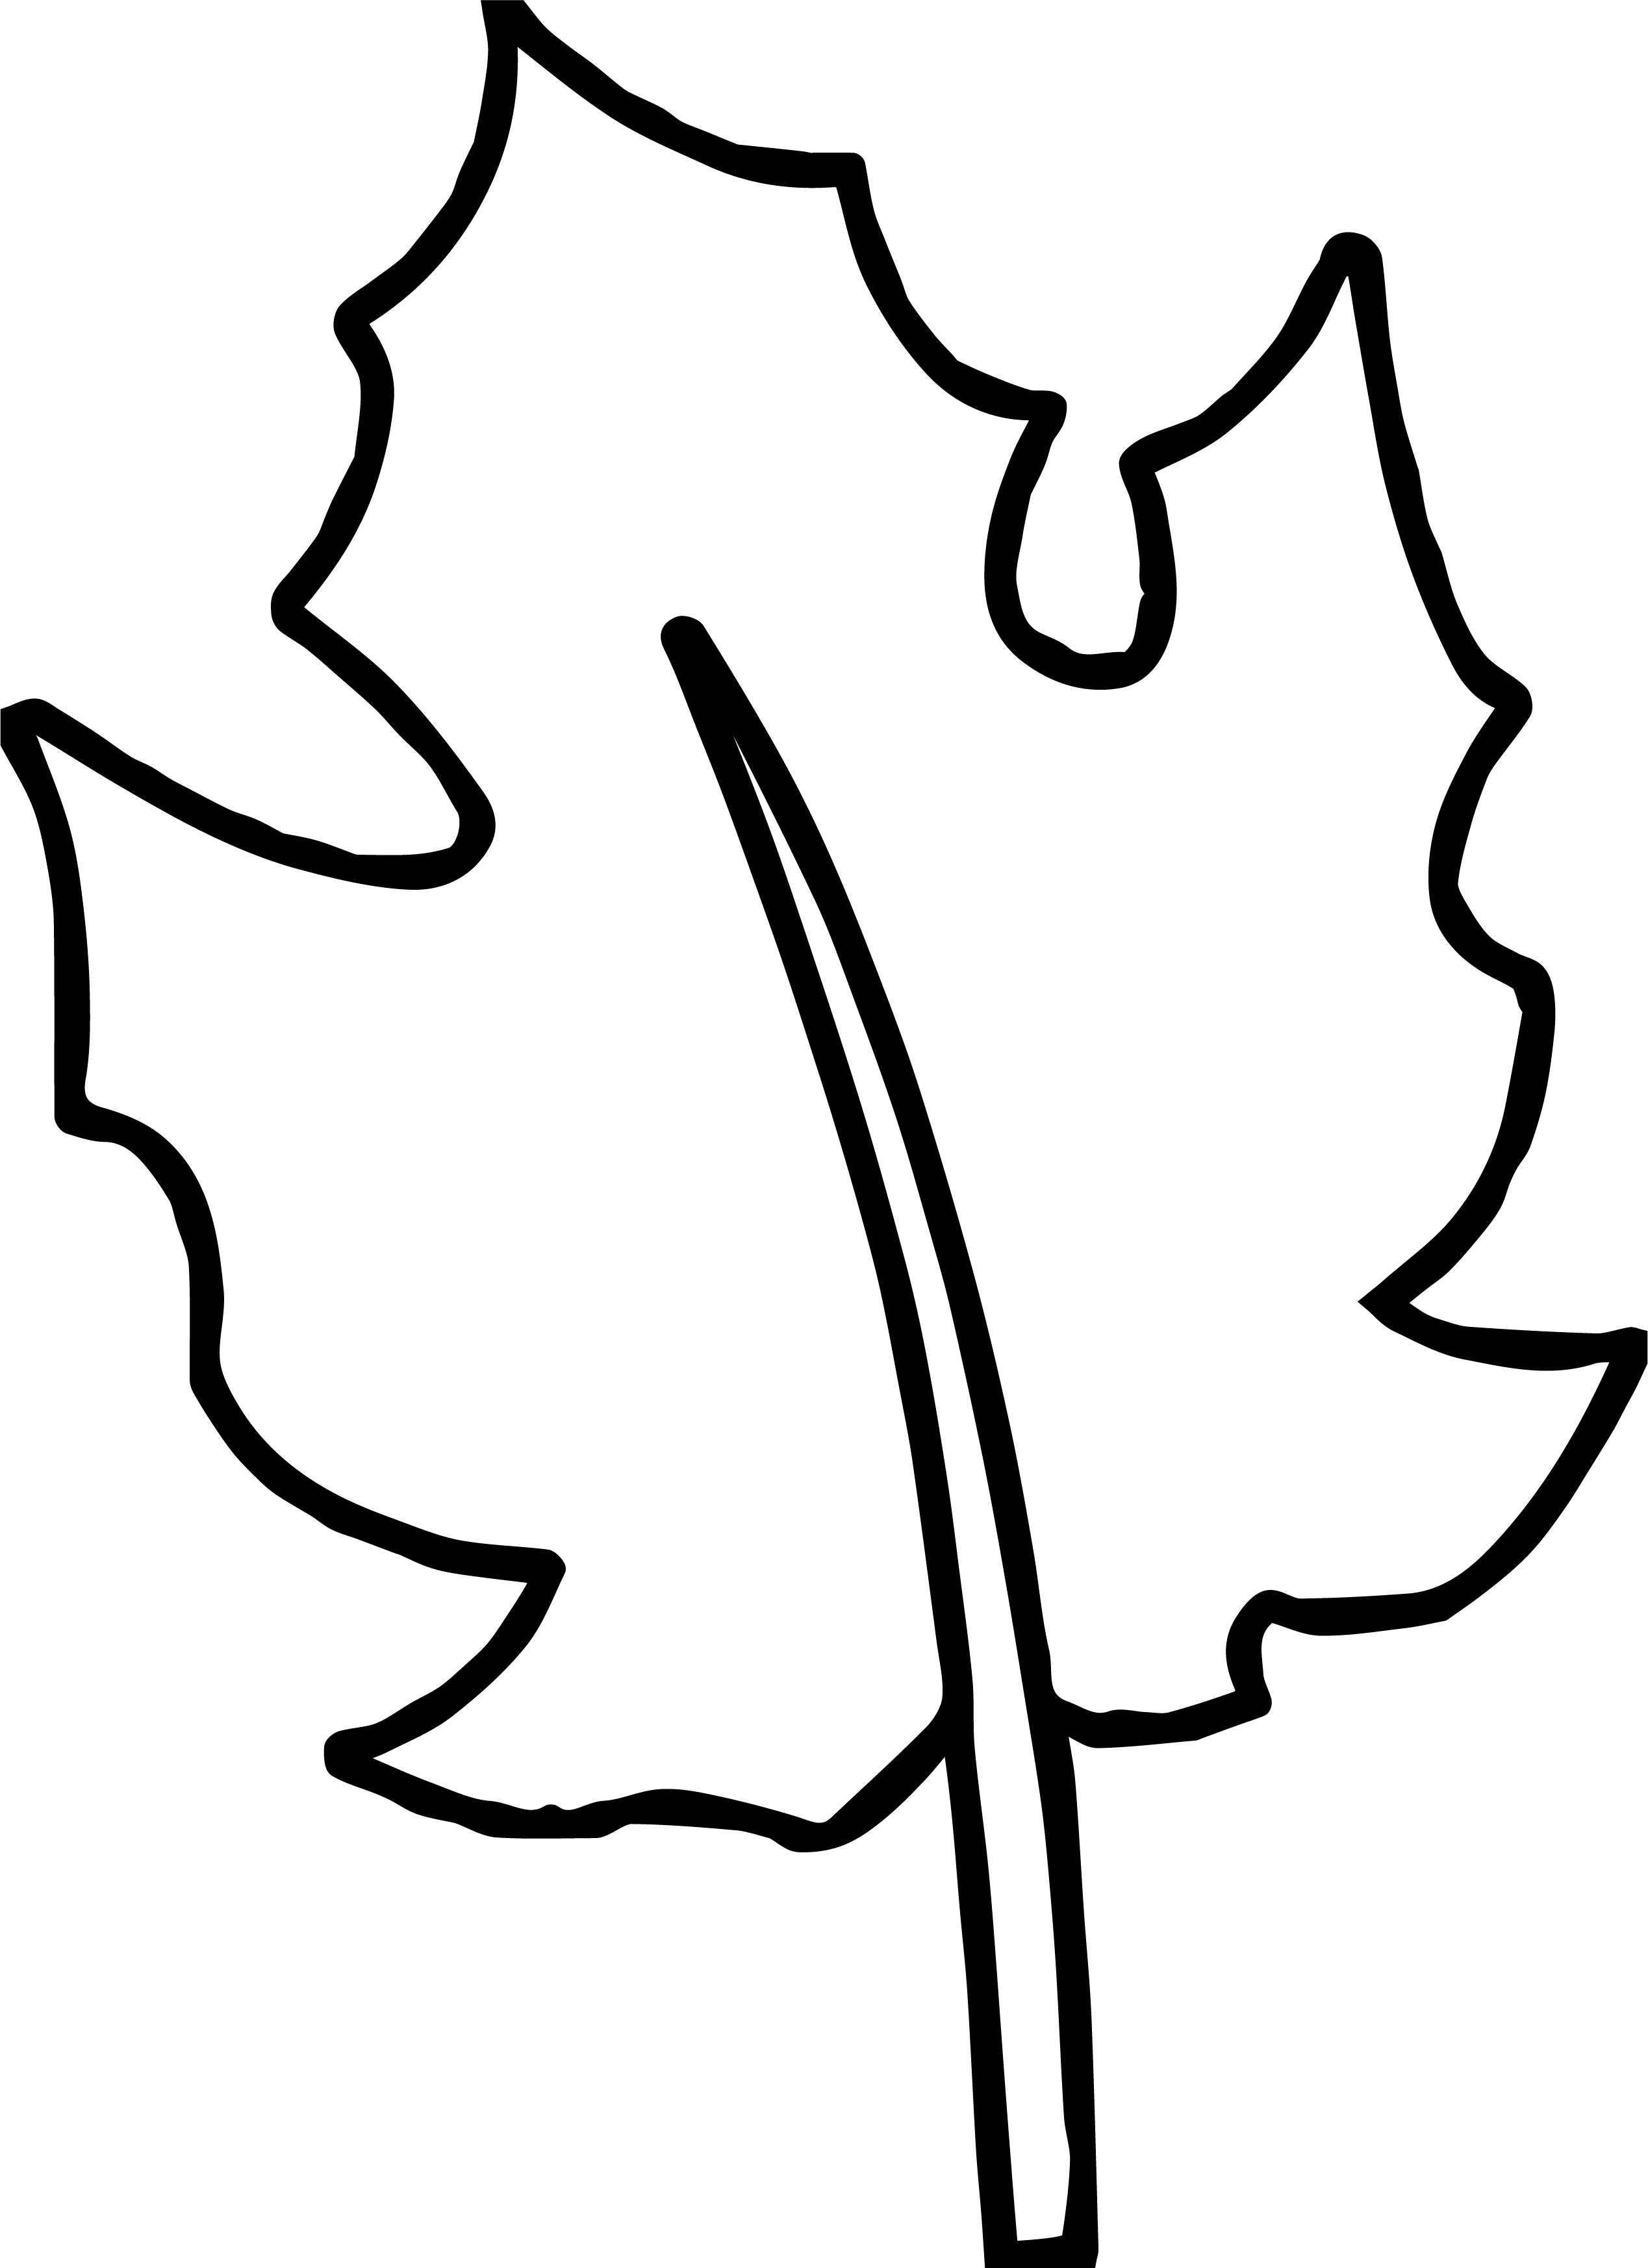 bold line coloring pages | Autumn Bold Line Leaf Coloring Page | Wecoloringpage.com